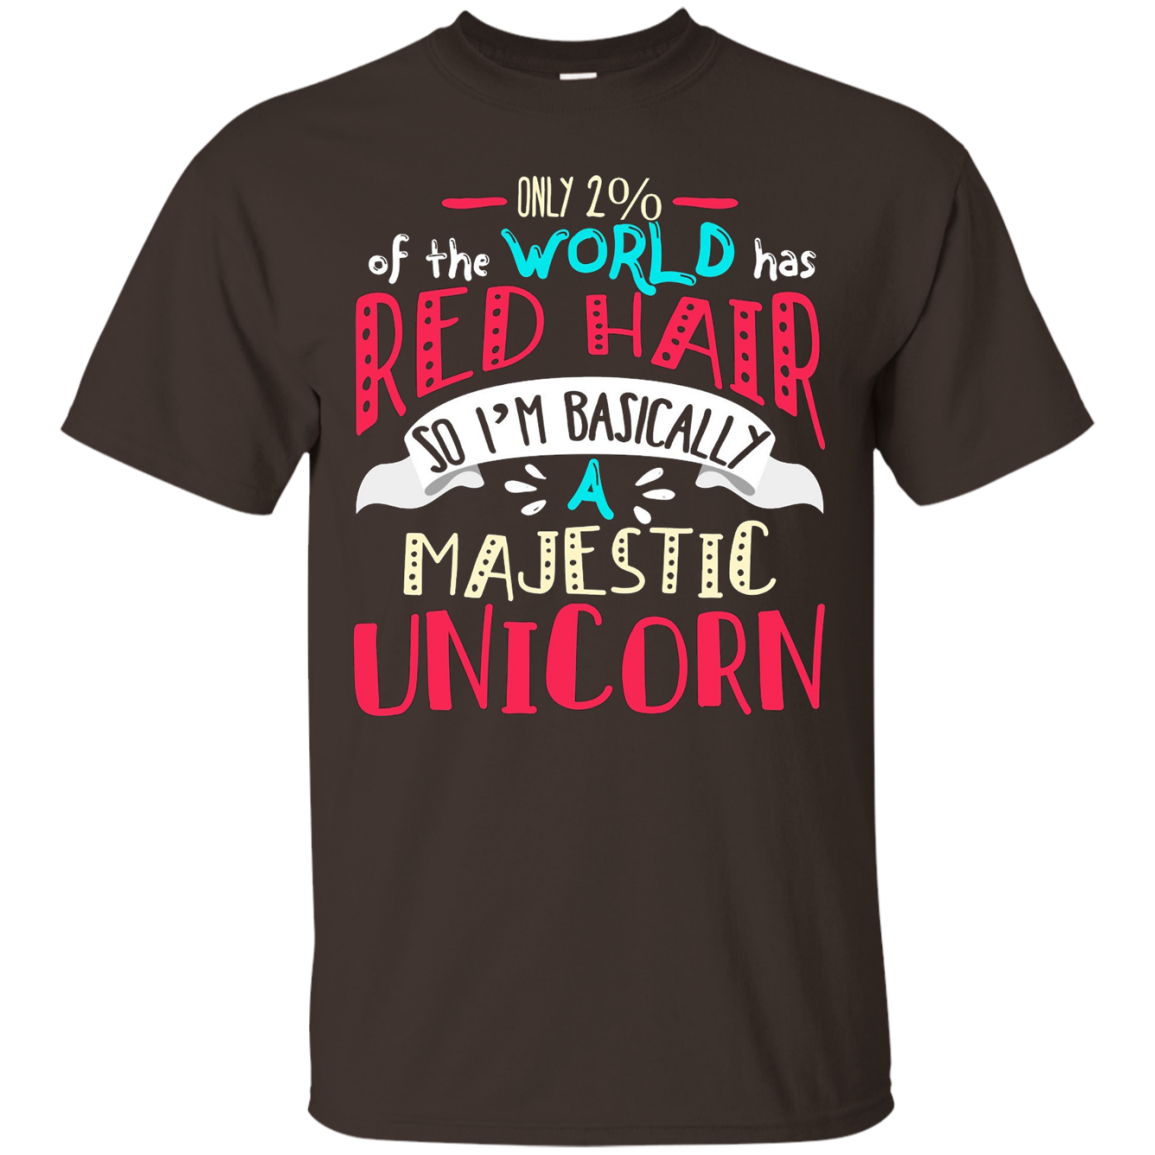 Only 2 Percent of the World Has Red Hair. Redhead Shirt